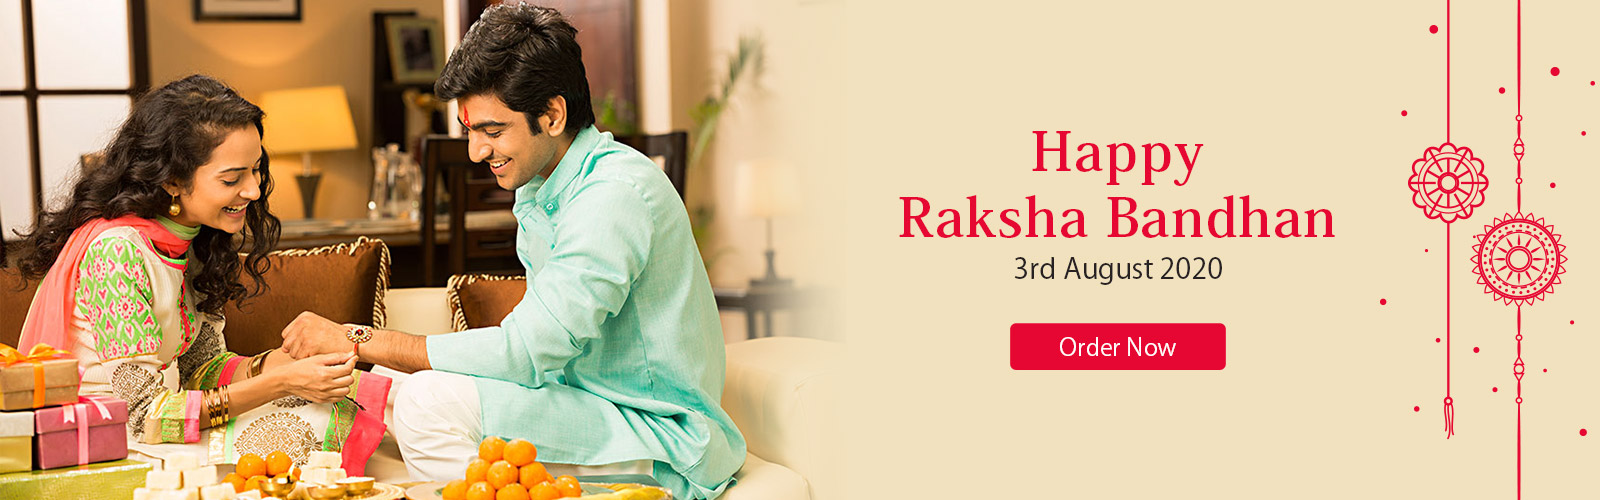 Same Day Delivery Rakhi online